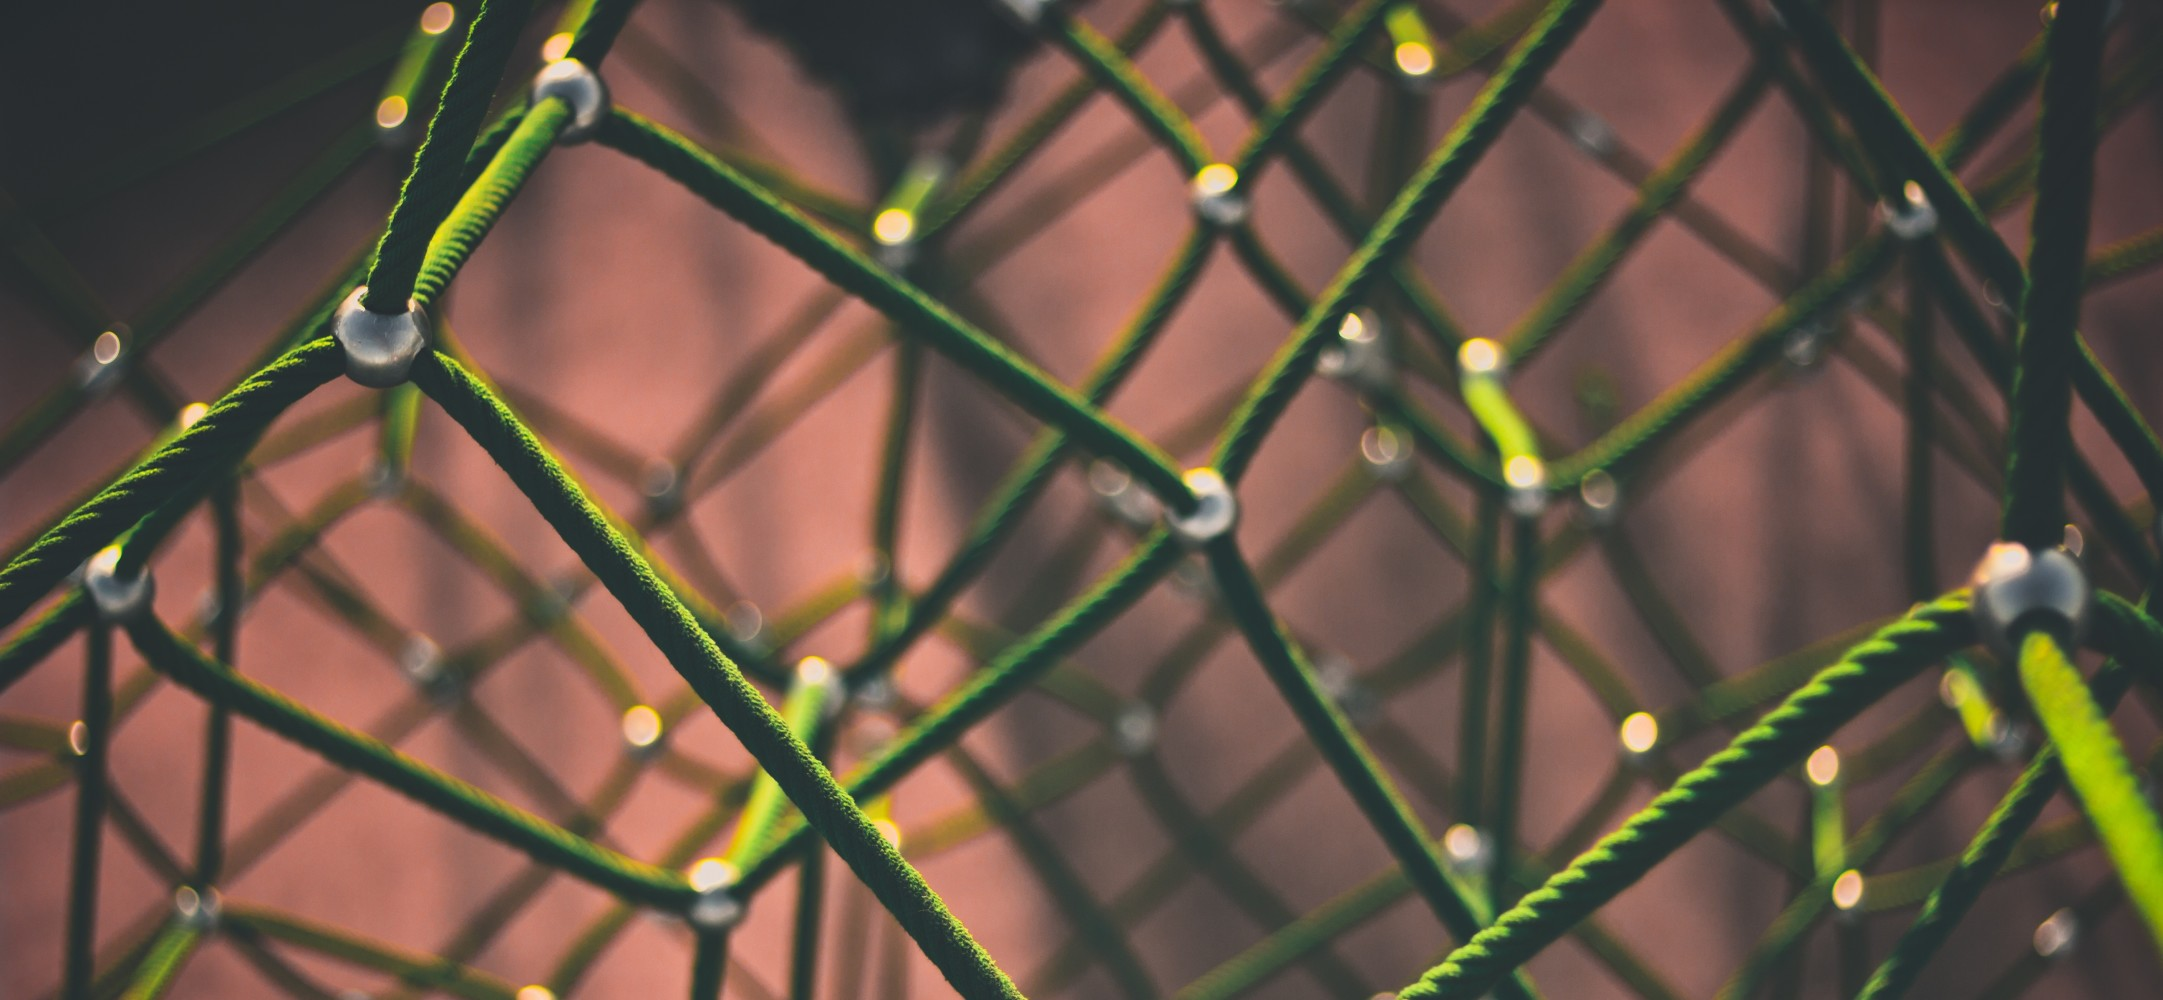 neon green wire metal ball jointed net mesh